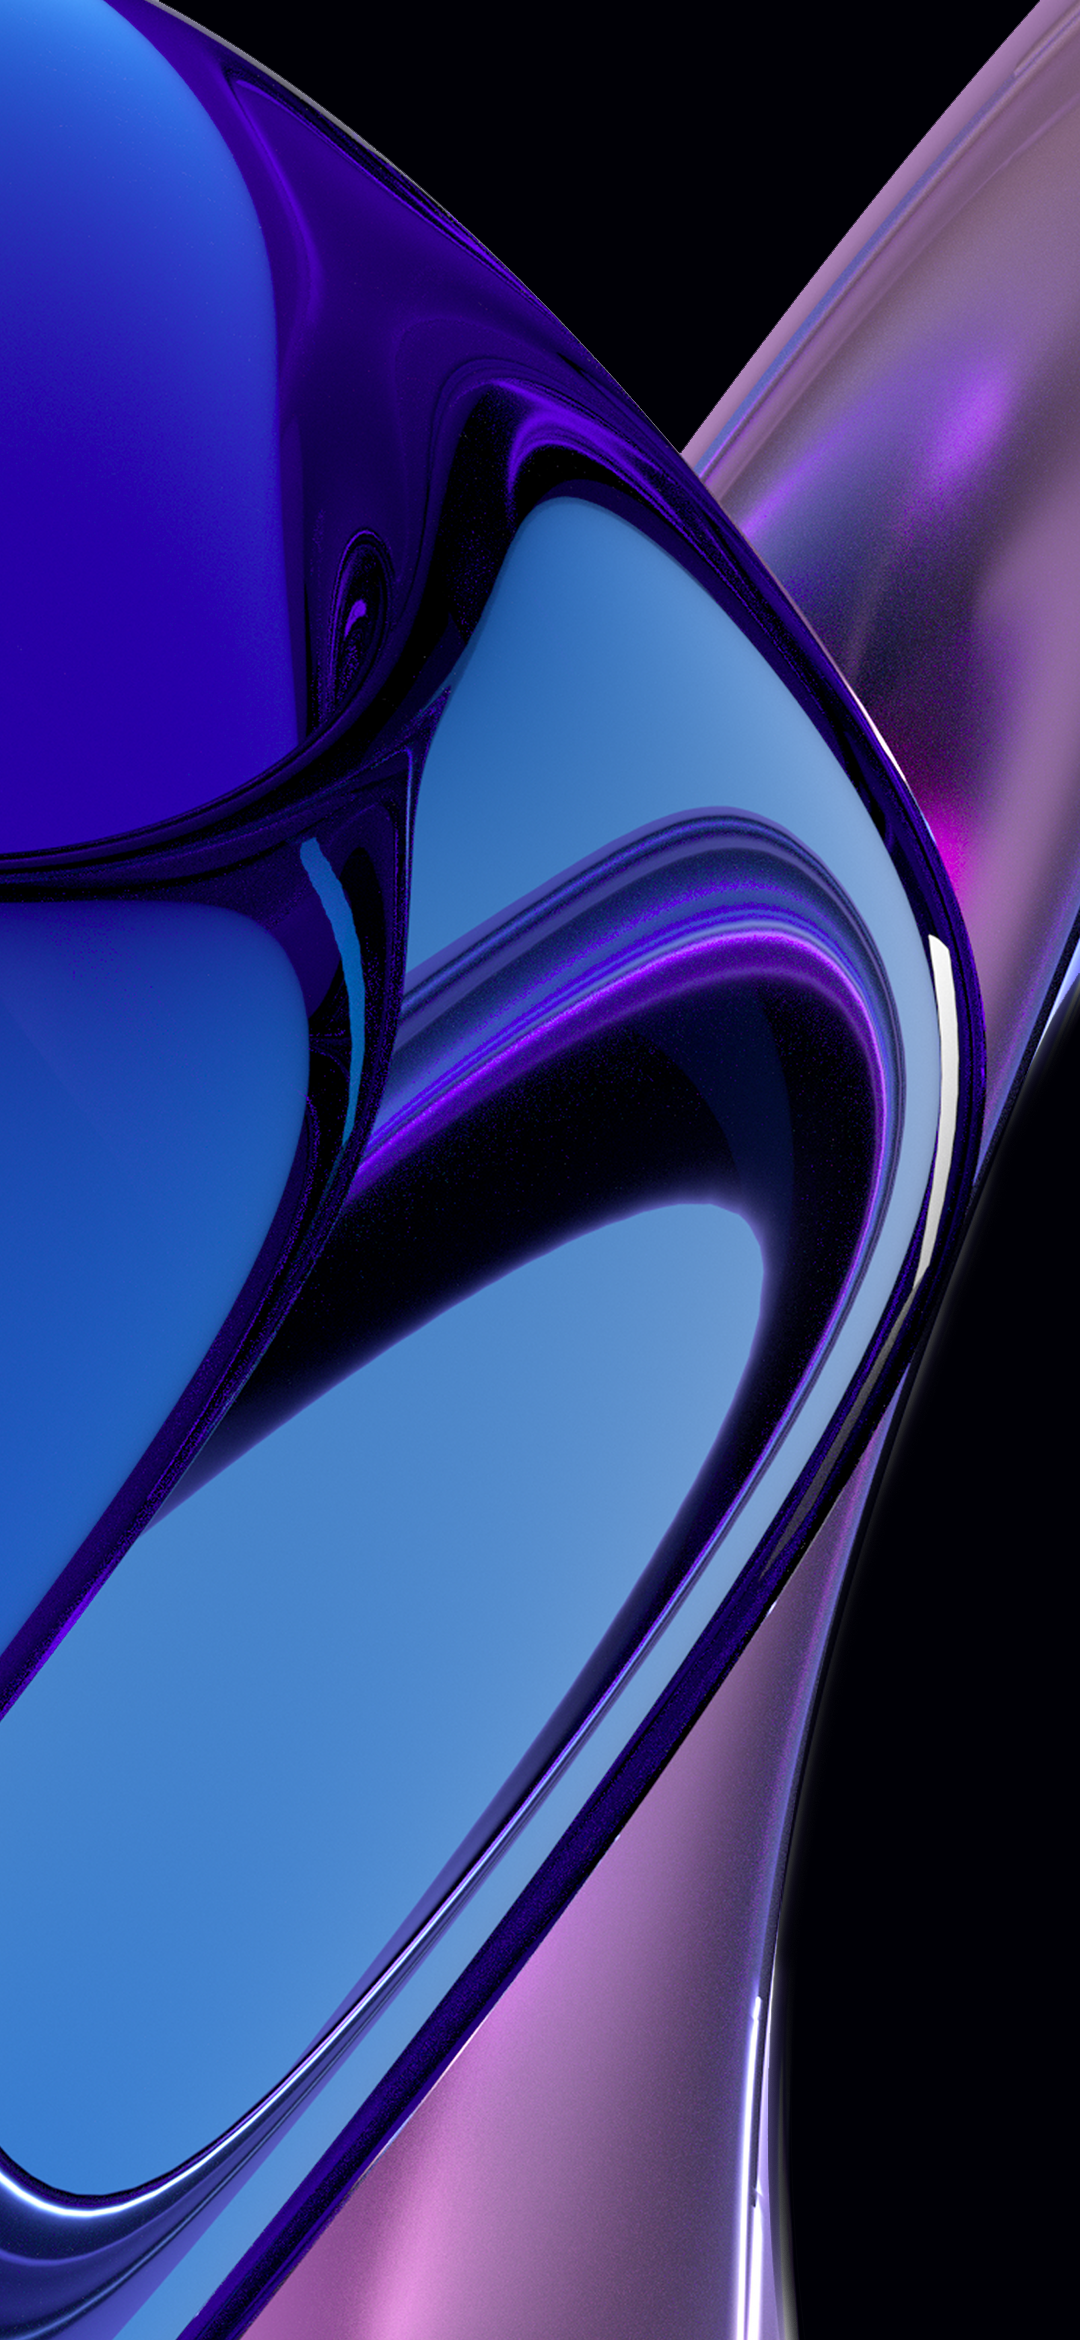 Coloros 7 Wallpaper Ytechb Exclusive In 2020 Stock Wallpaper Android Wallpaper Hd Wallpaper Android